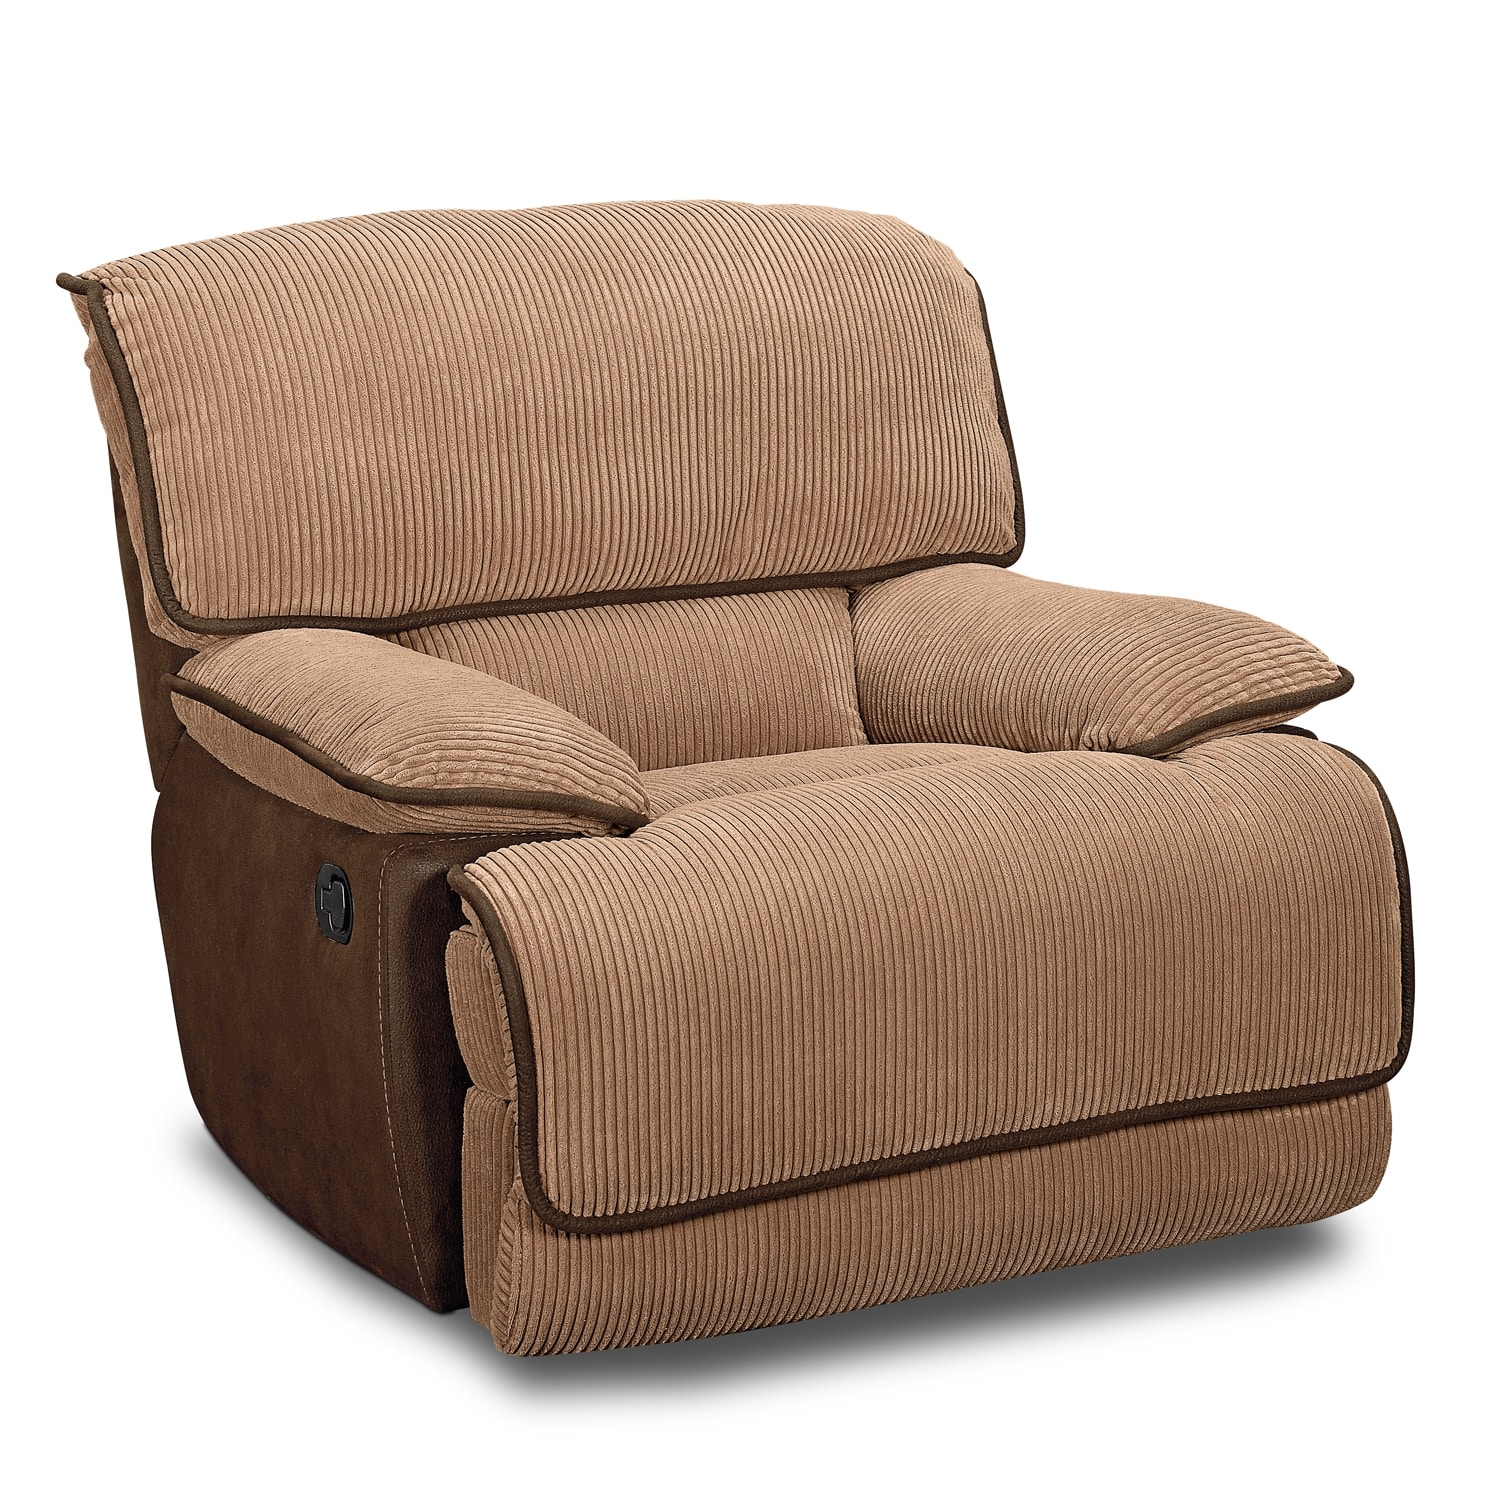 Living Room Furniture - Laguna Glider Recliner